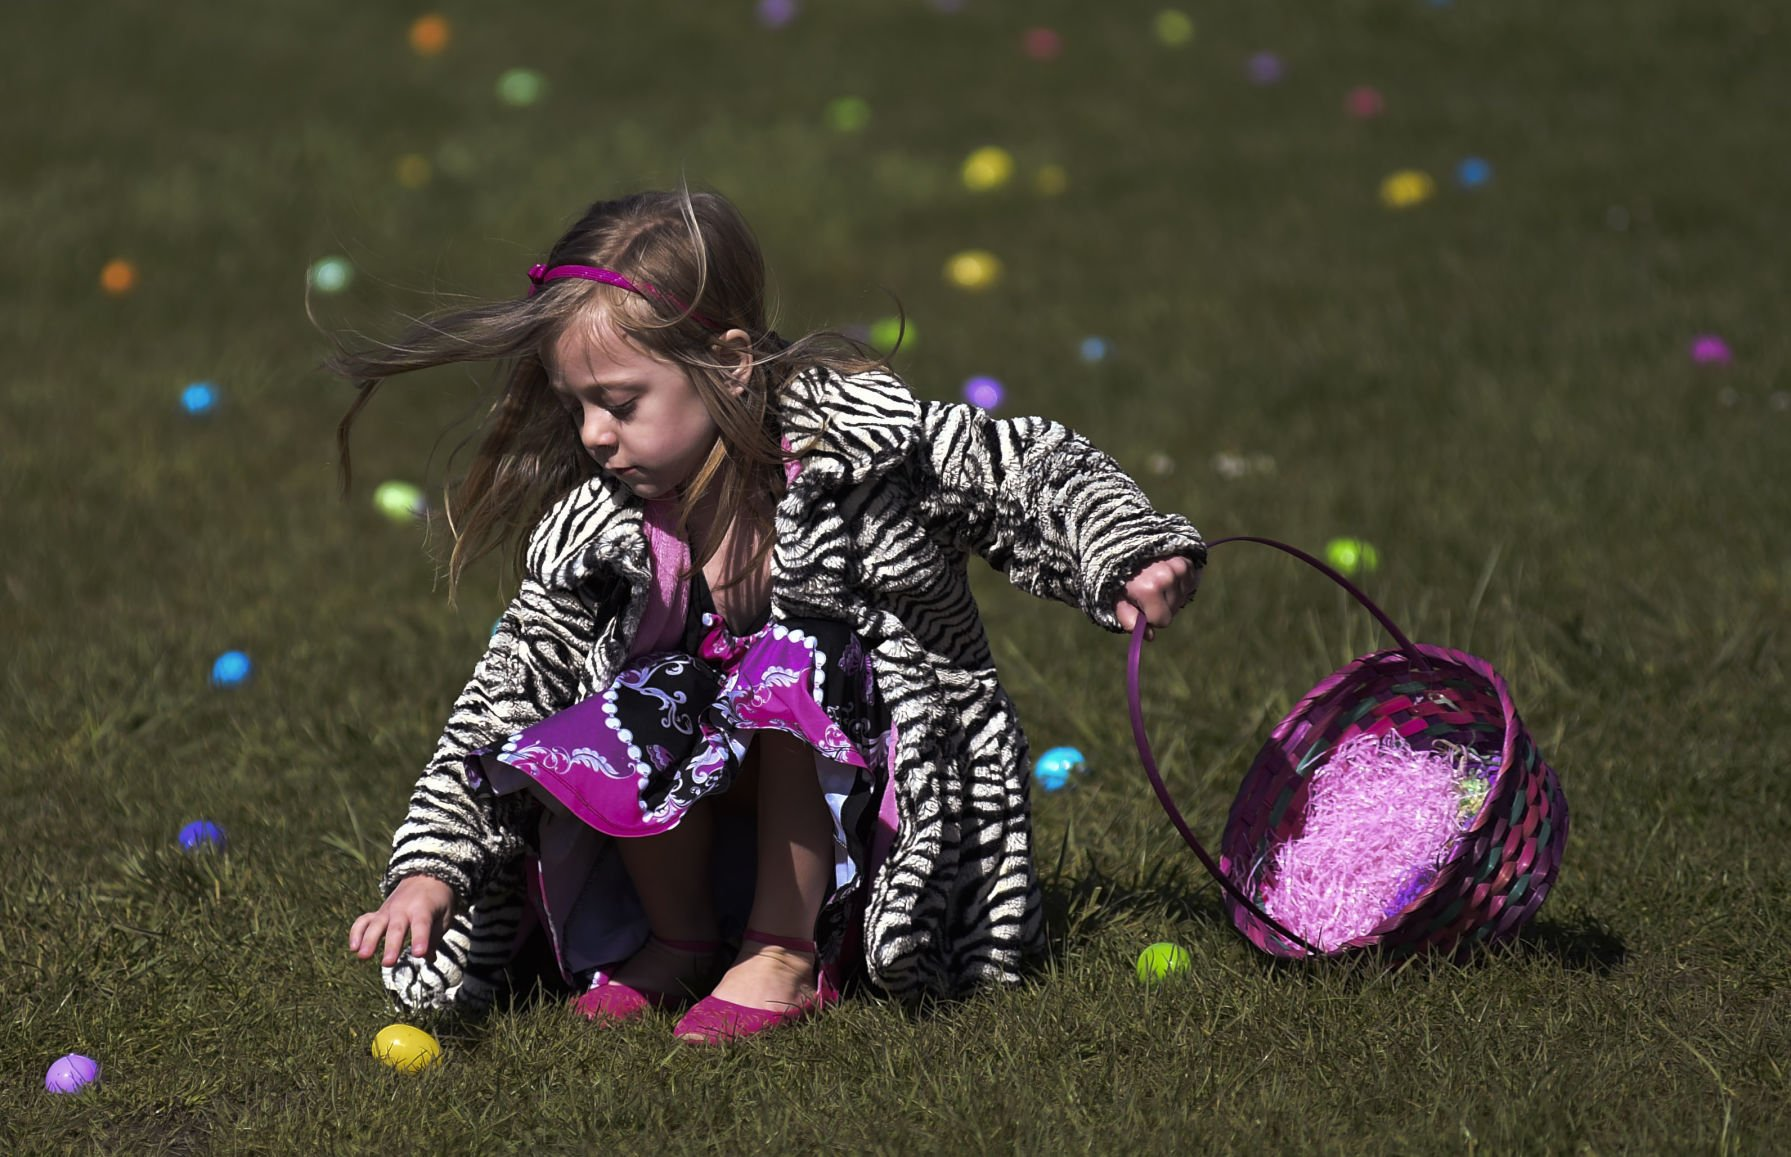 Roosevelt Park Zoo Annual Easter Egg Hunt Brings on the Adrenaline Rush